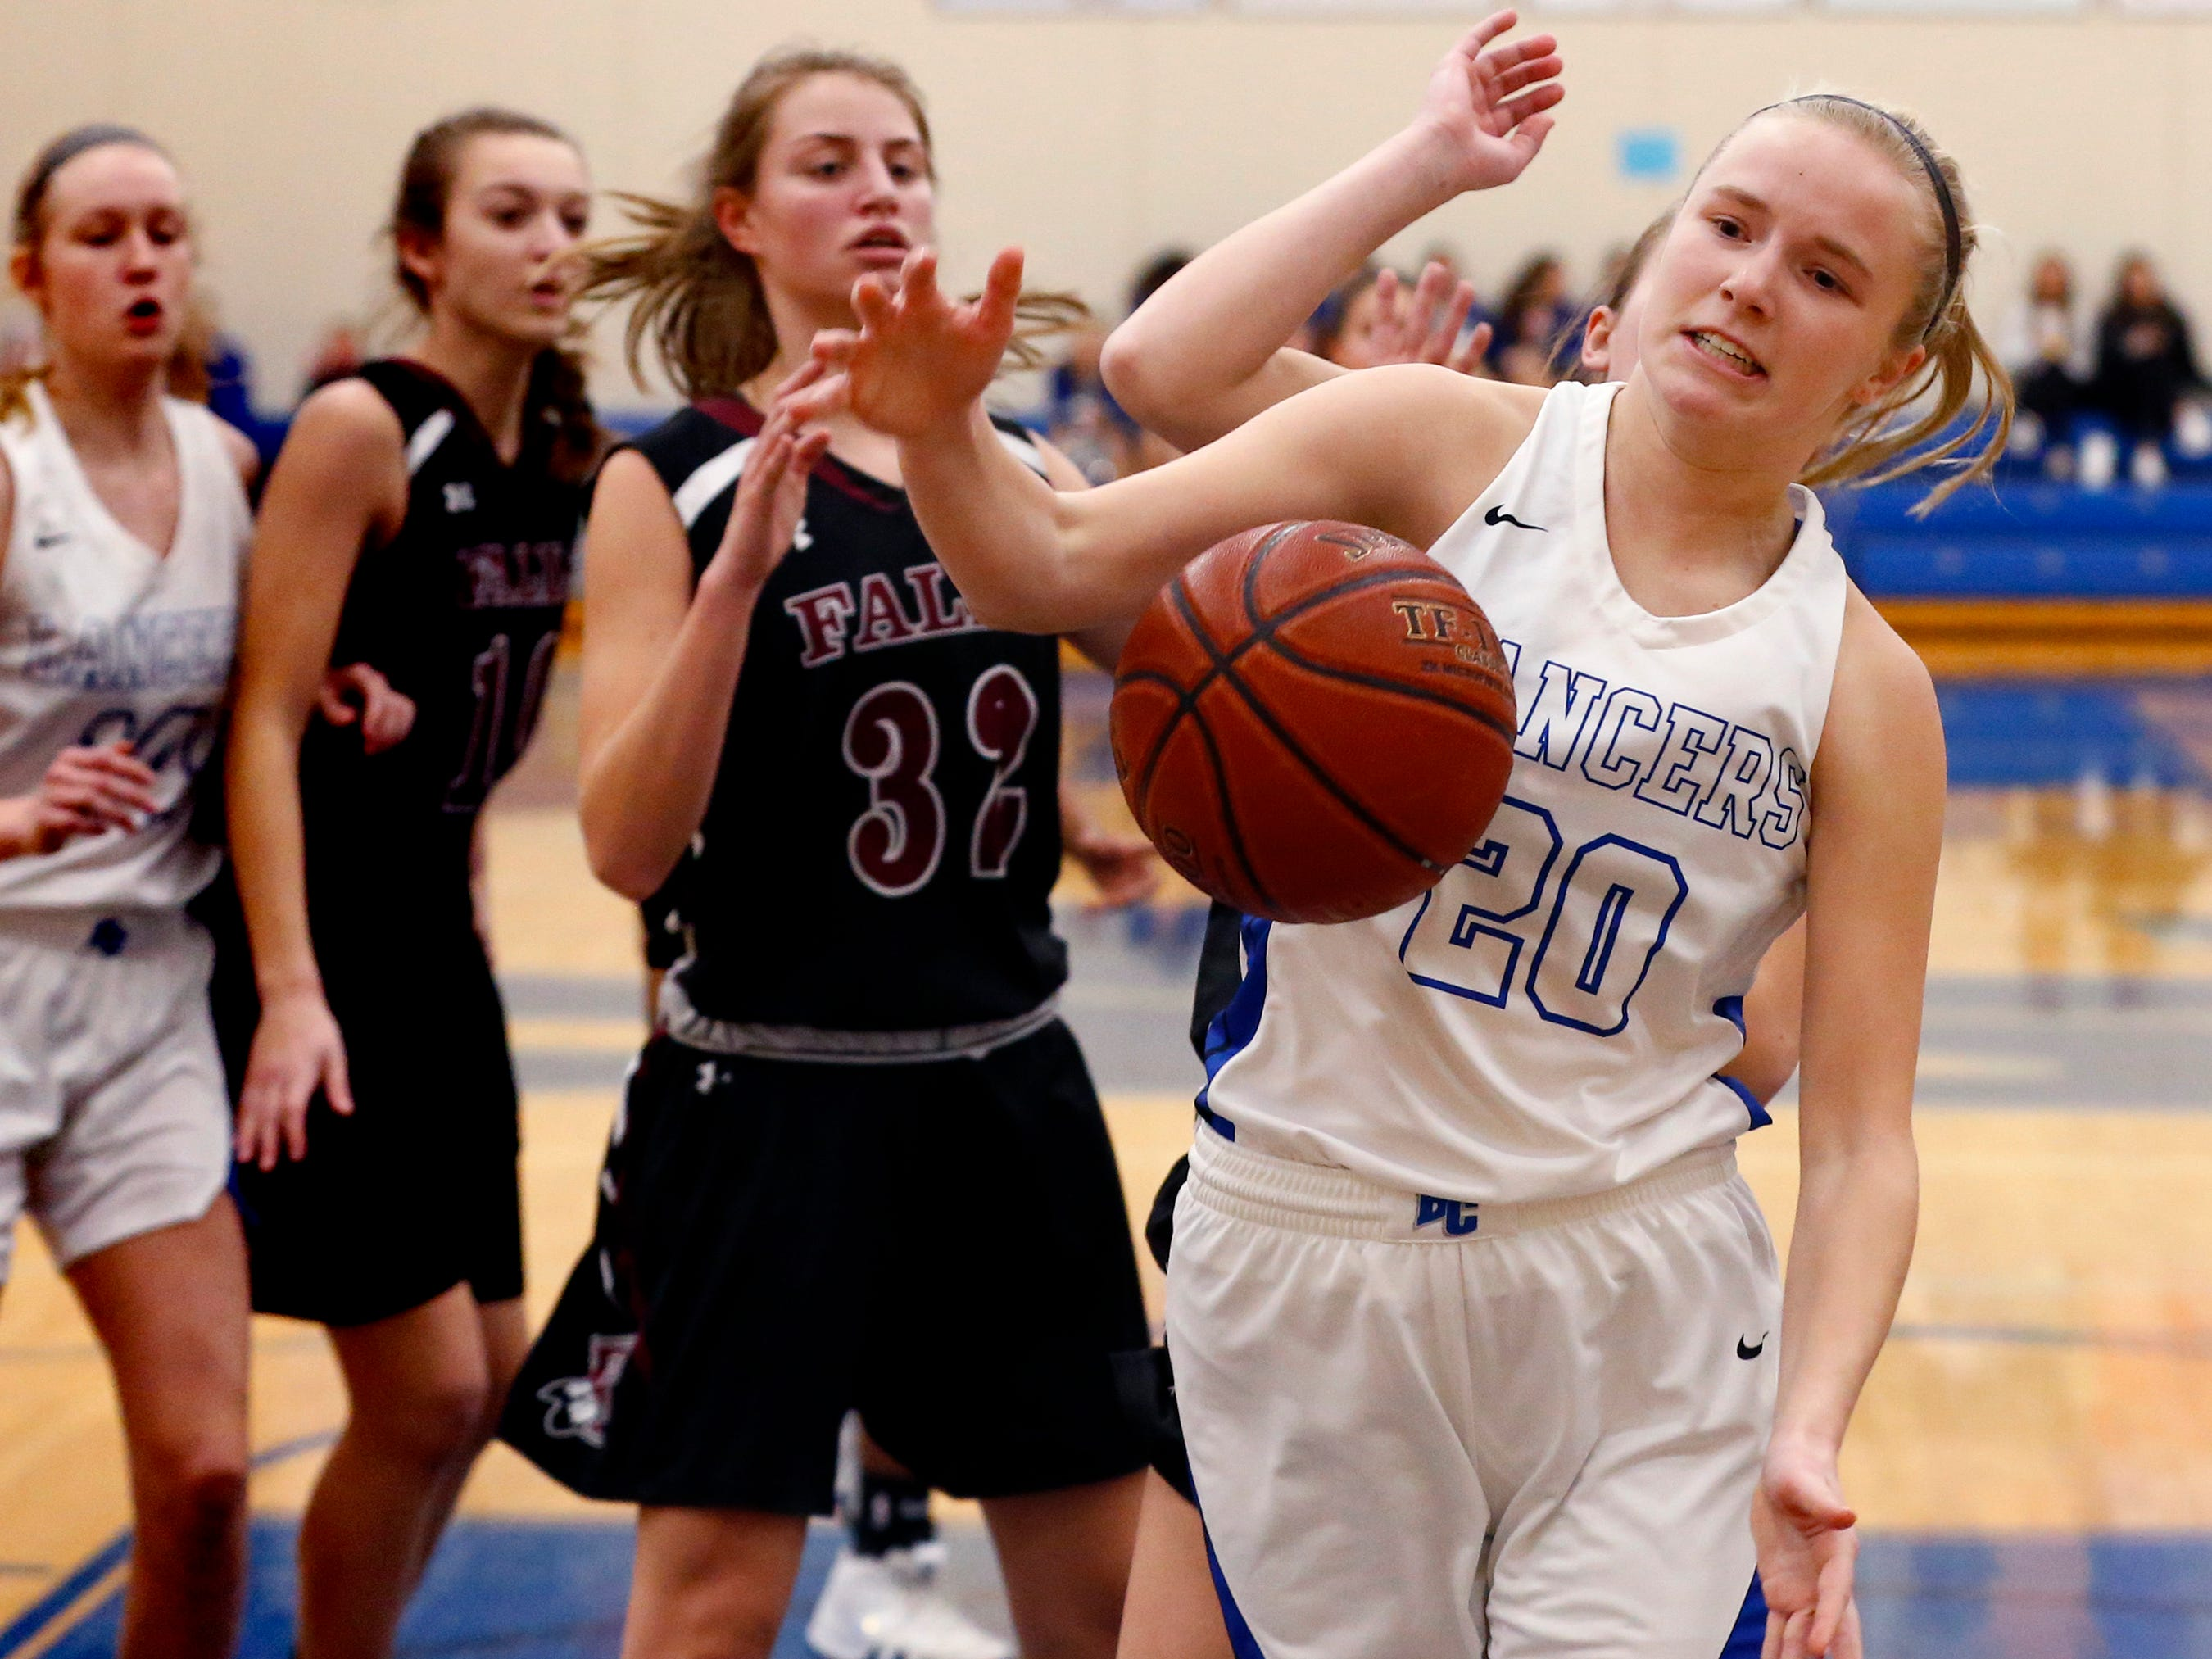 Brookfield Central's Emily Busch looks to corral a rebound in the Lancers' game against Menomonee Falls at Central on Jan. 15.